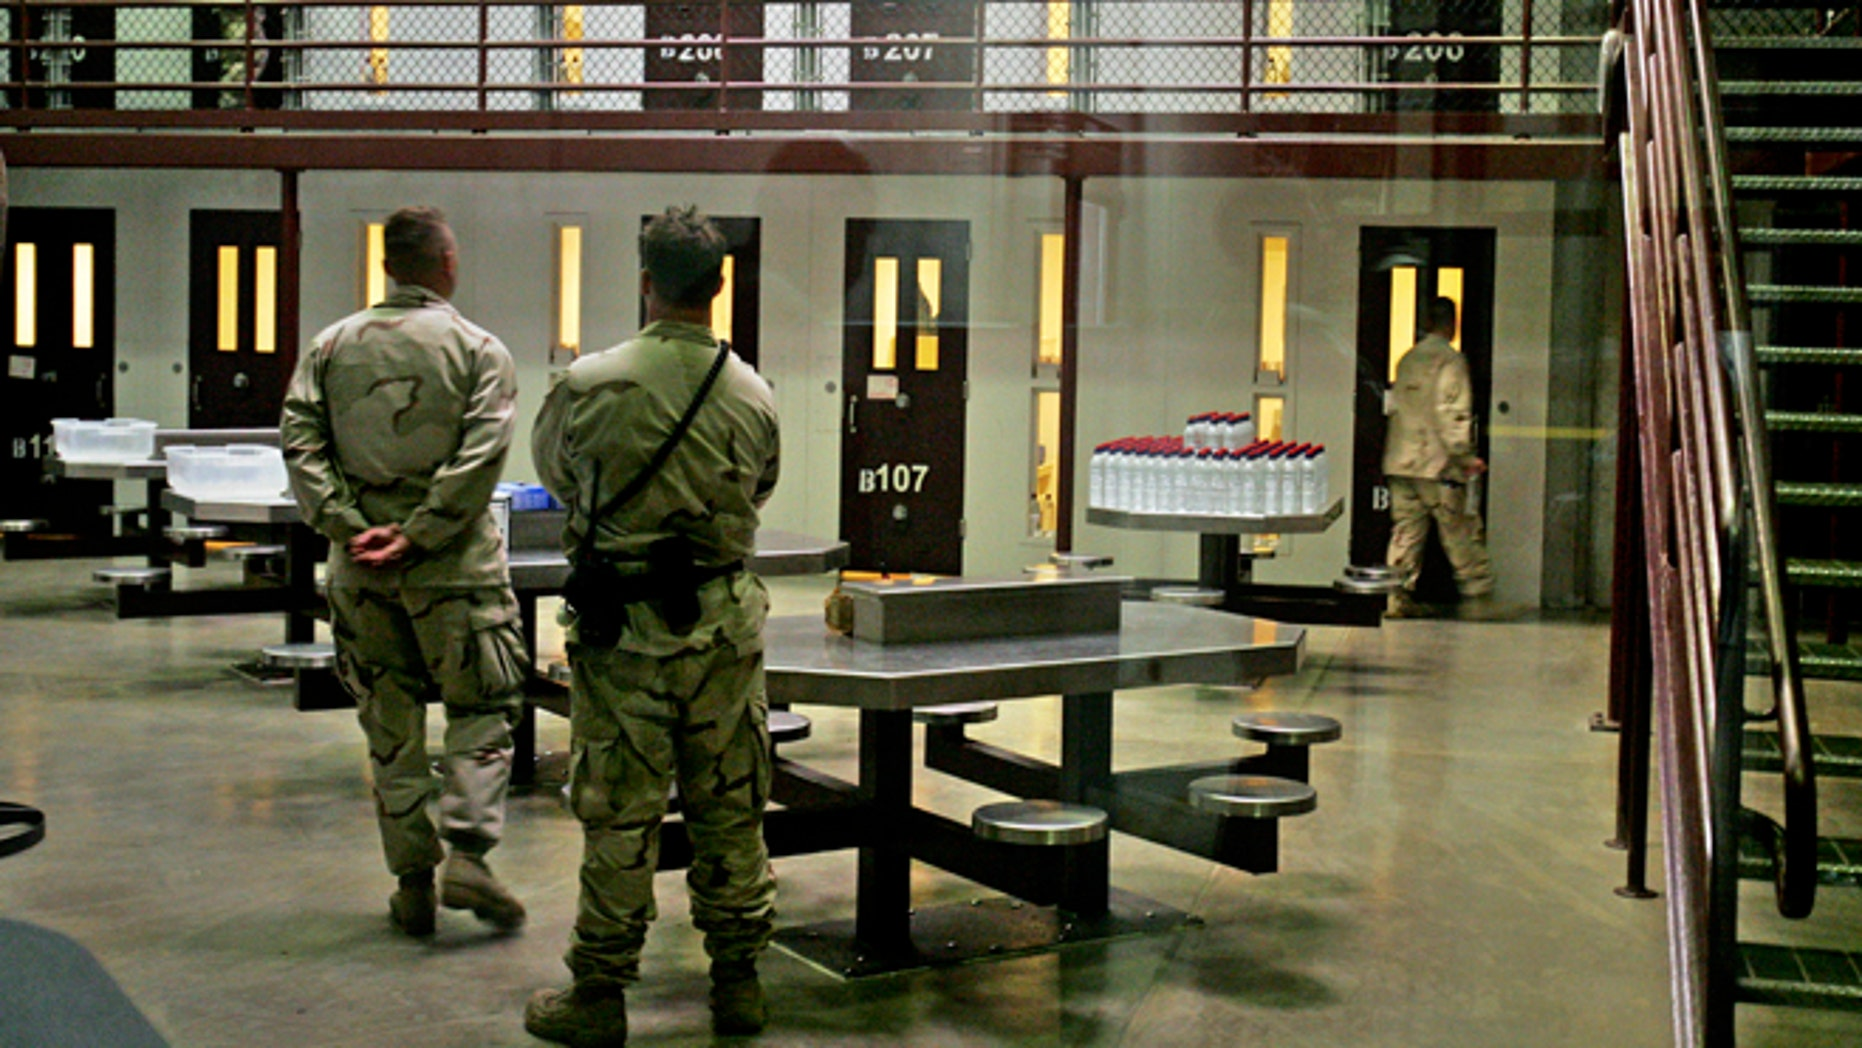 In this  Oct. 9, 2007 file photo, Guantanamo guards keep watch over a cell block with detainees in Camp 6 maximum-security facility, at Guantanamo Bay U.S. Naval Base, Cuba.